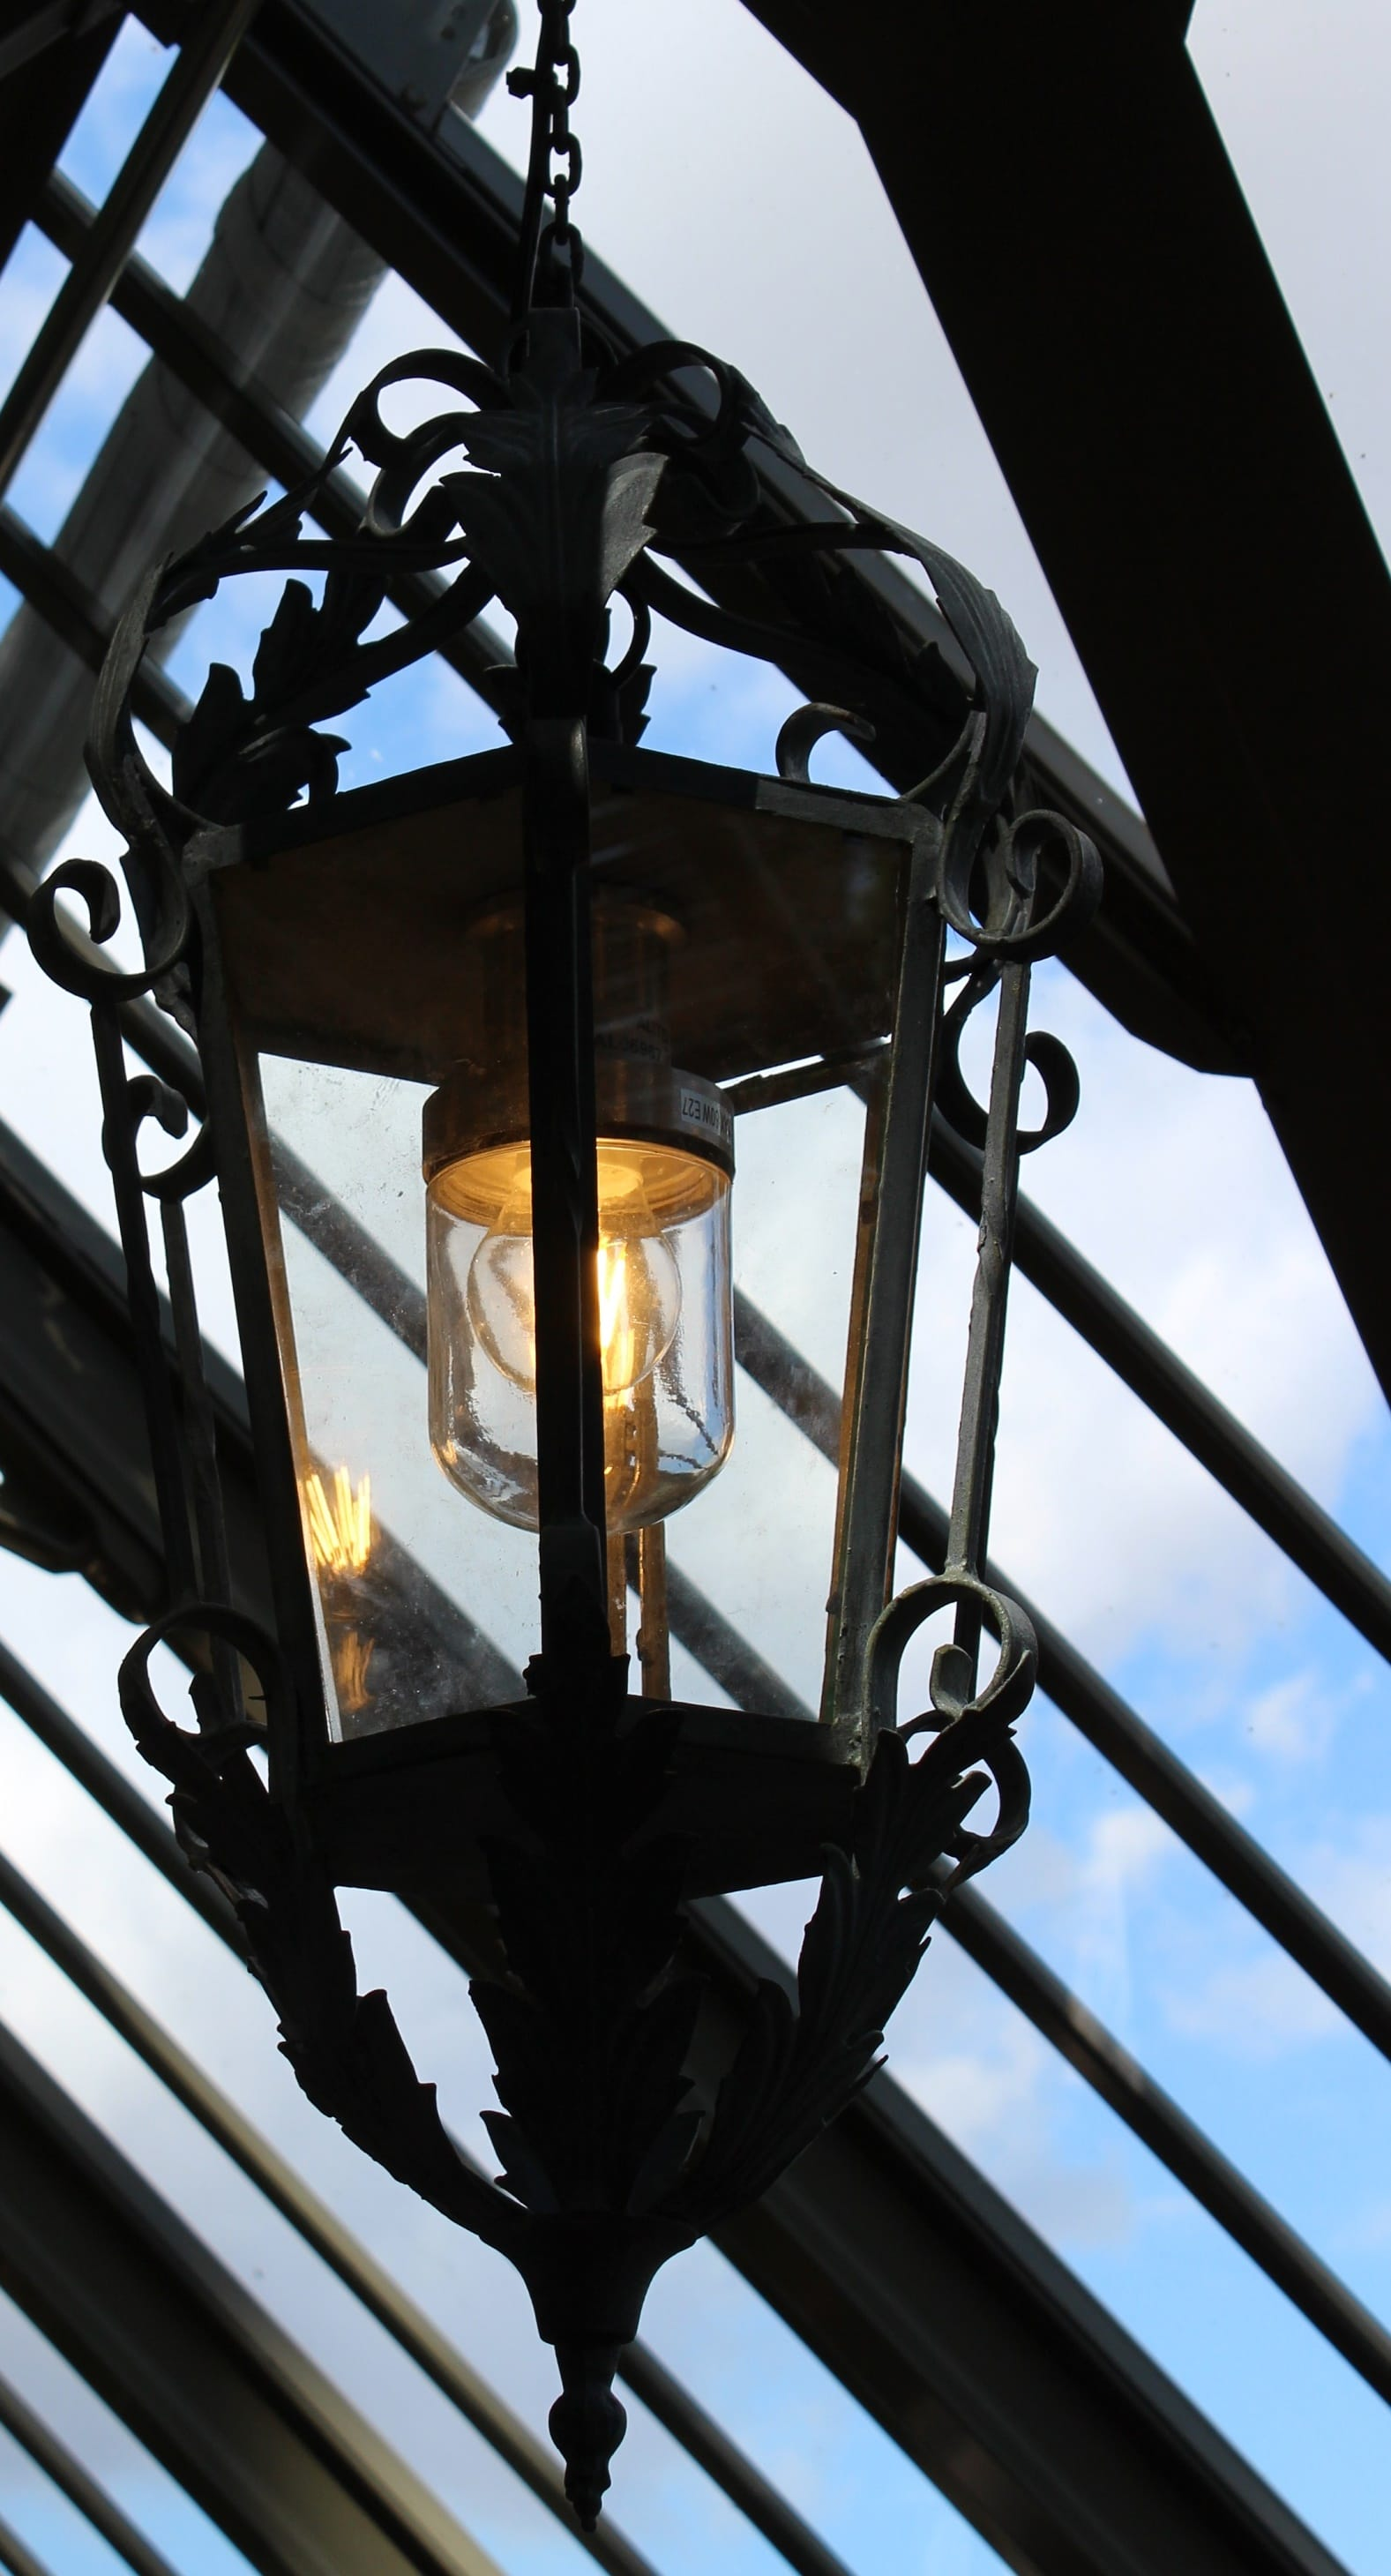 Lantern in the Ickworth